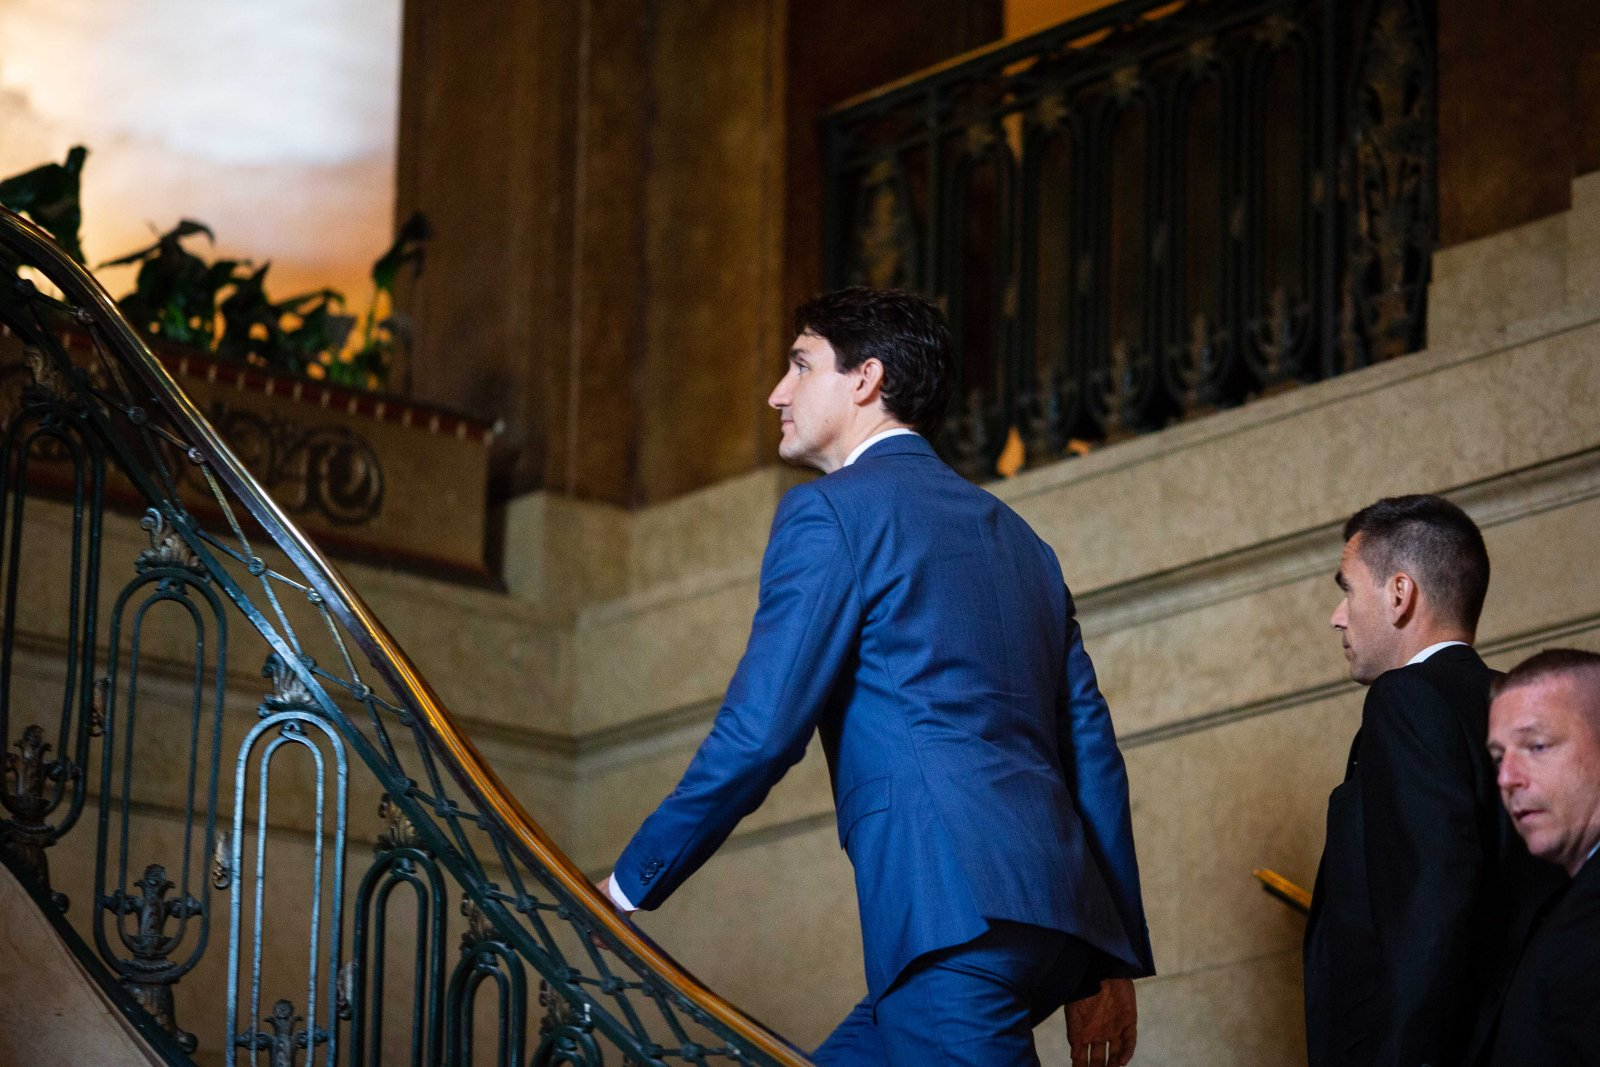 Trudeau's criticism will cost Canada 'a lot of money'